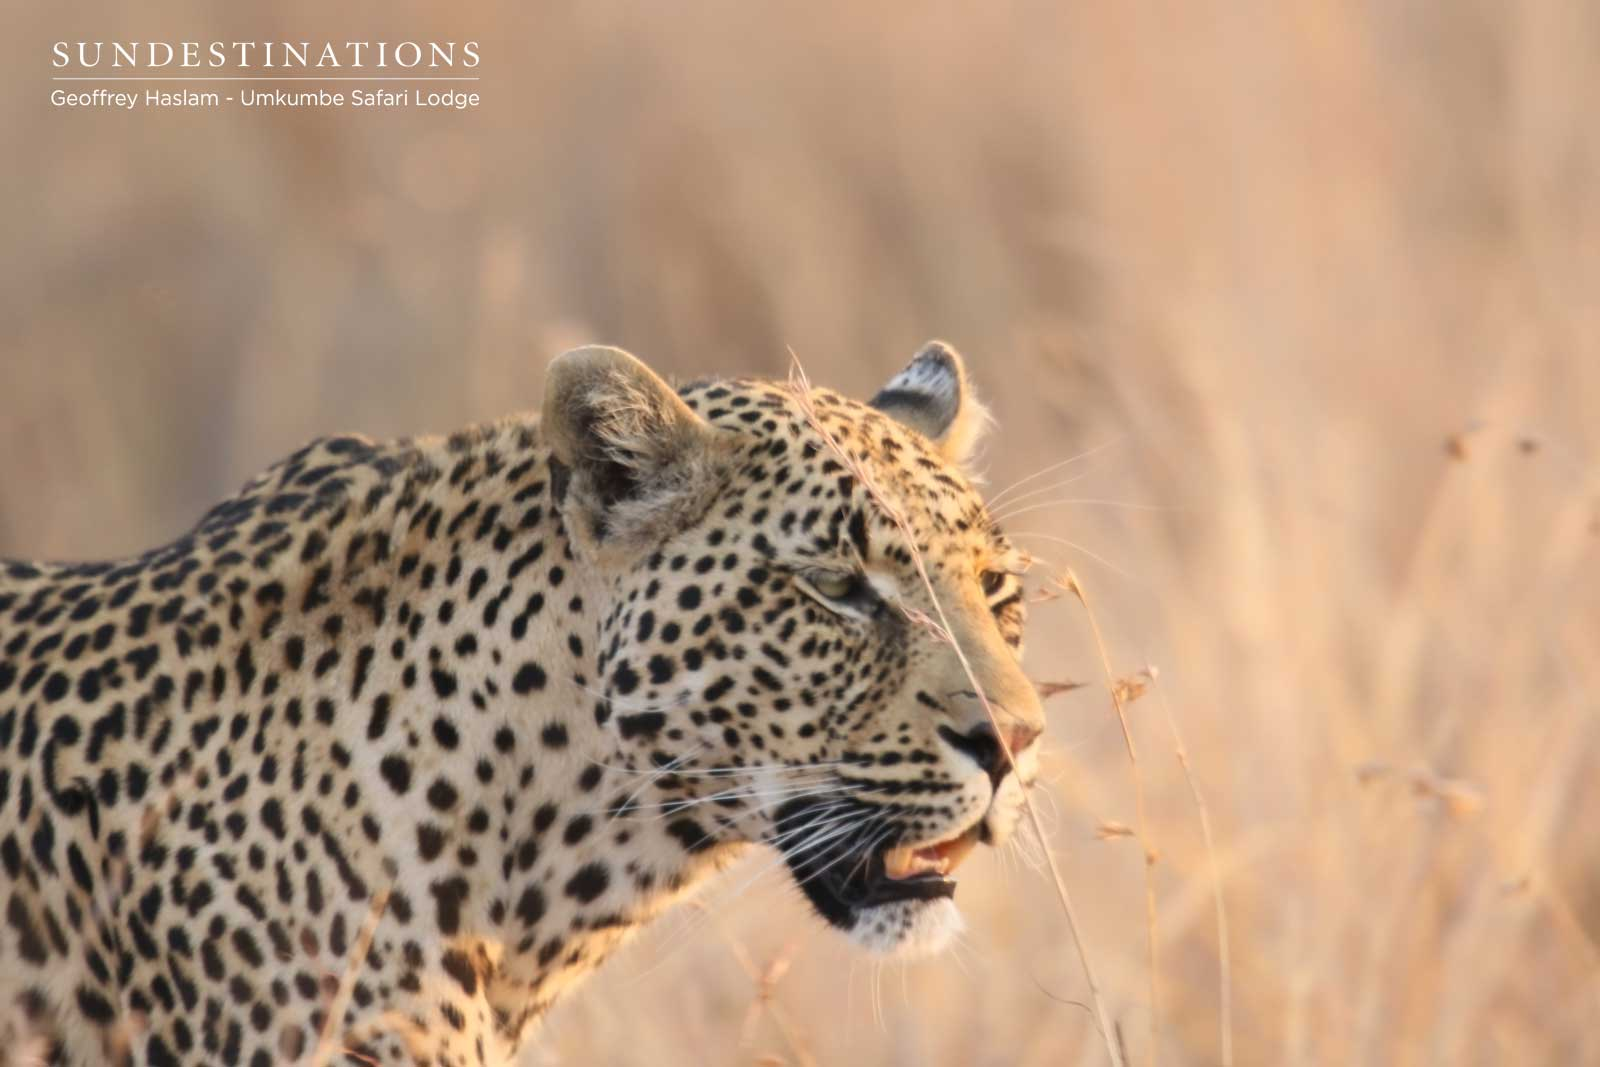 Nweti the Leopard